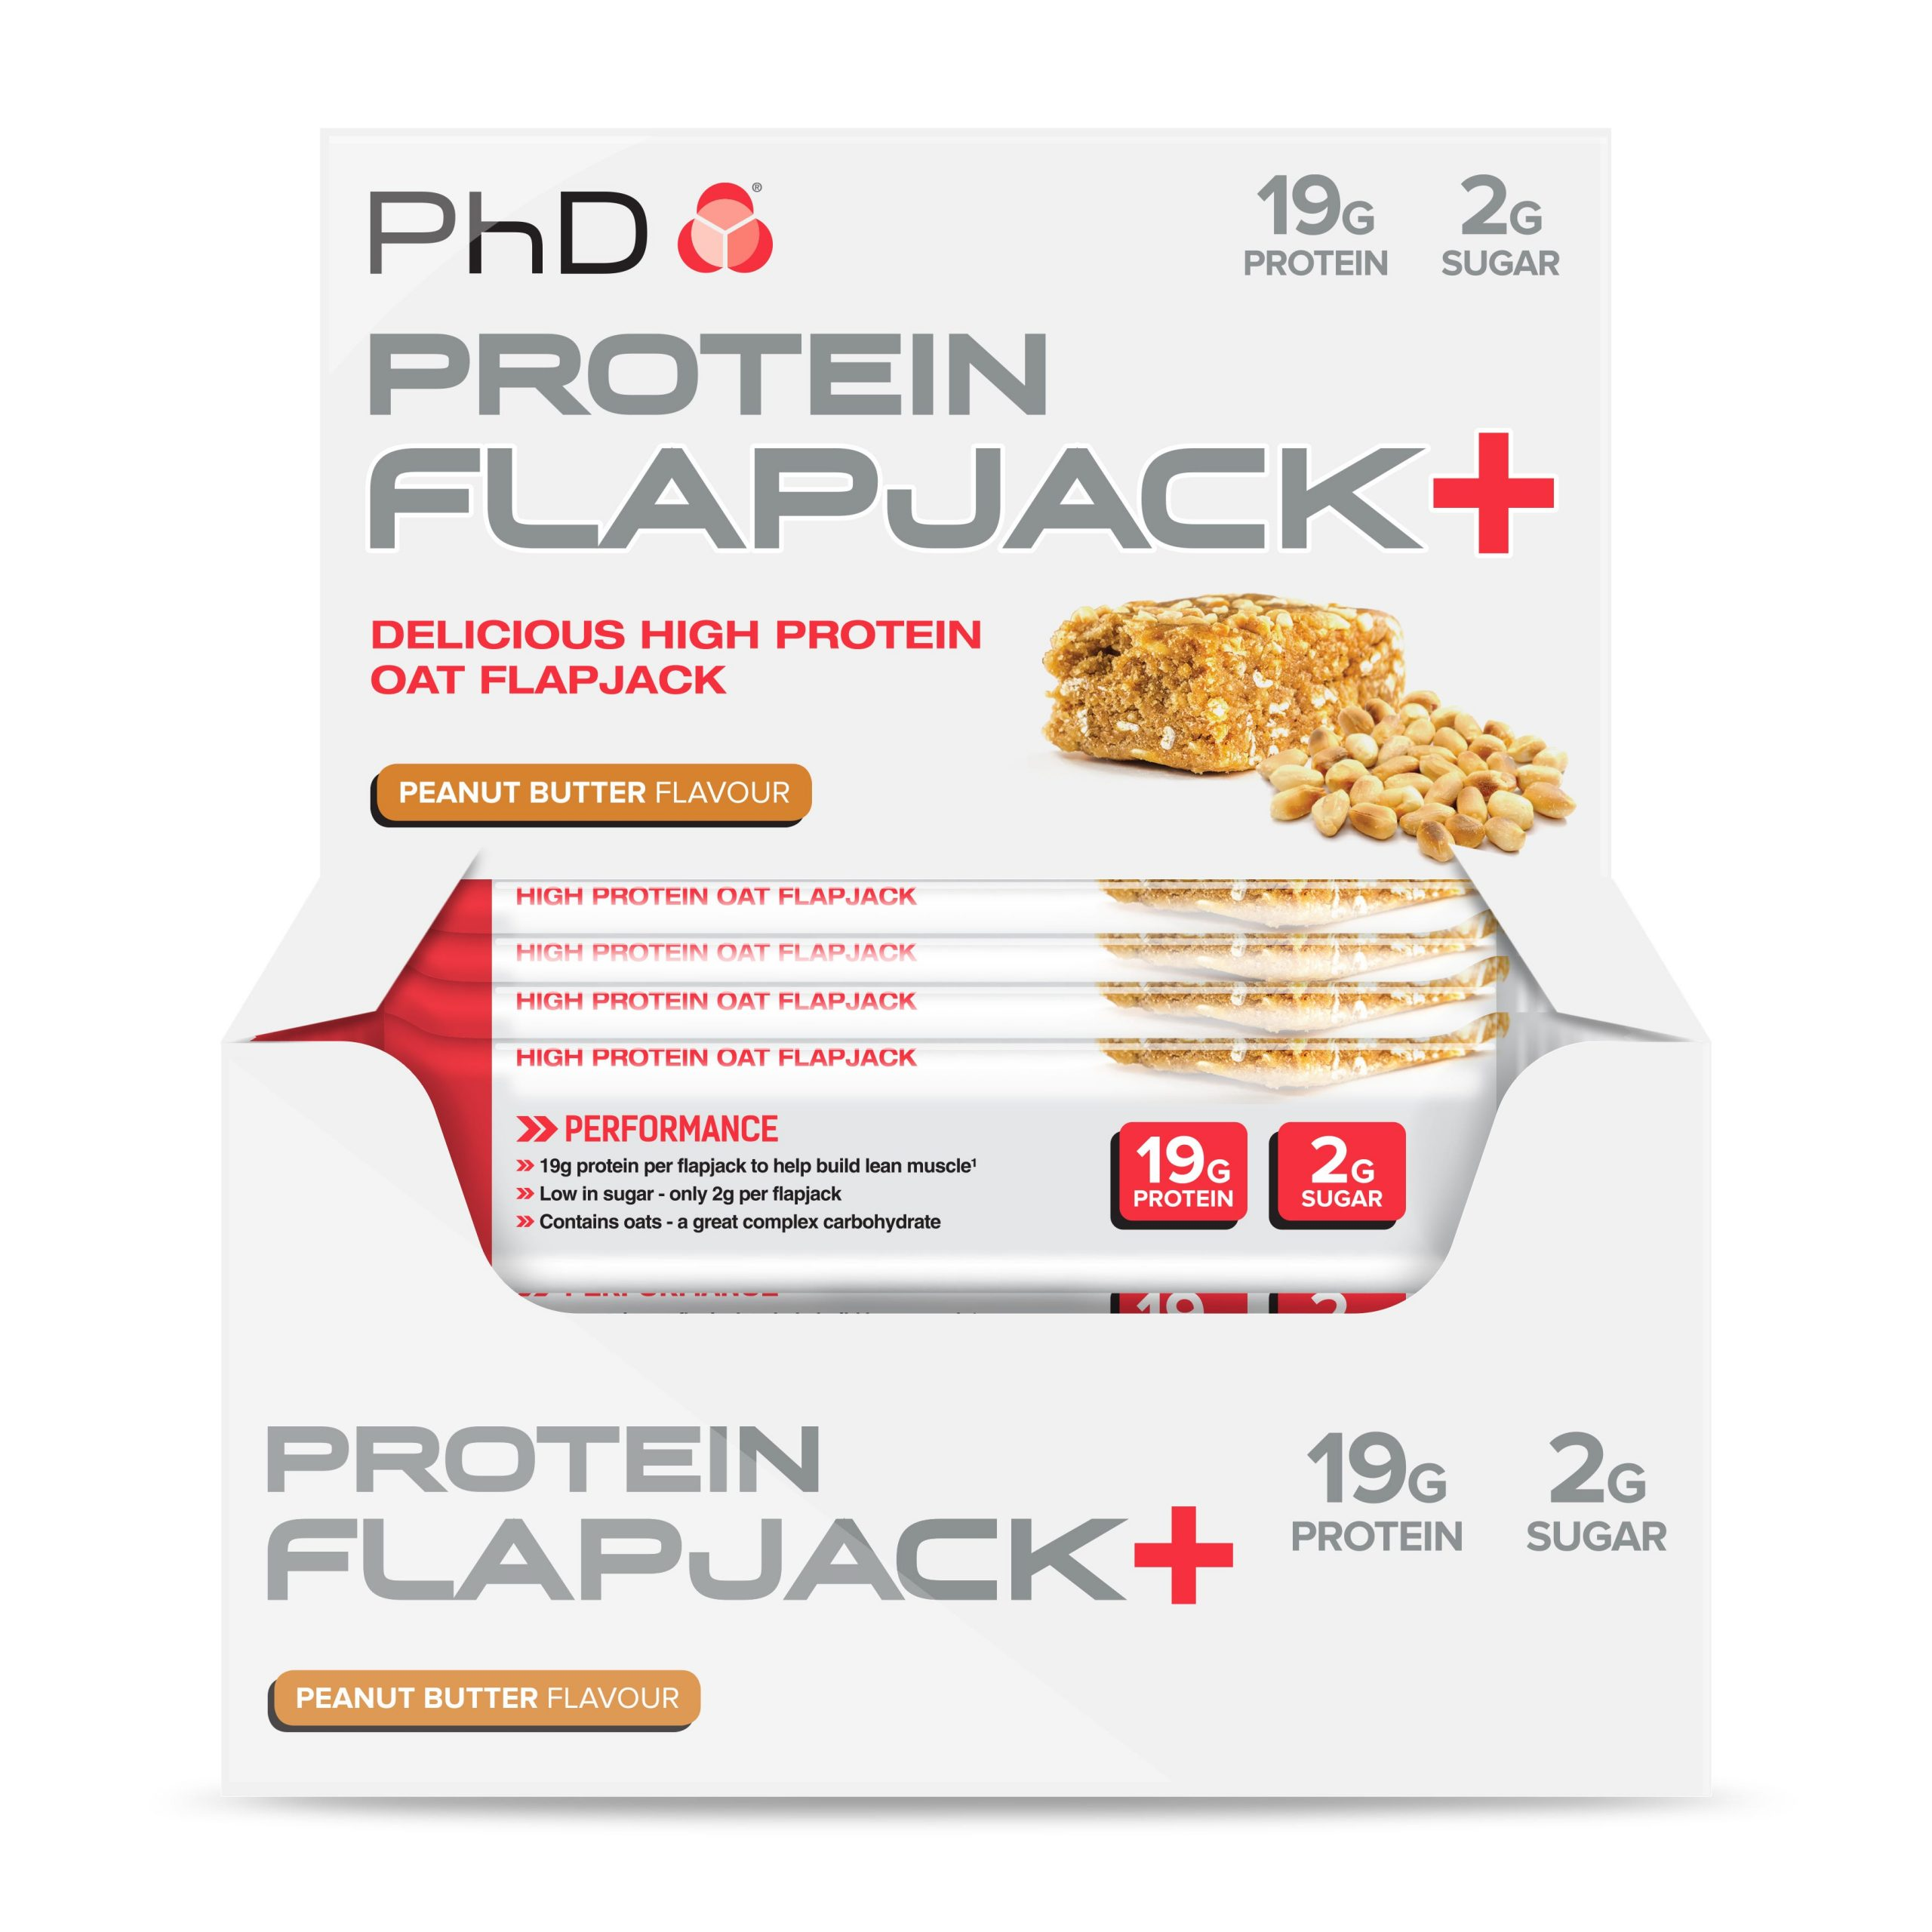 PHD Protein Flapjack+ – Peanut Butter